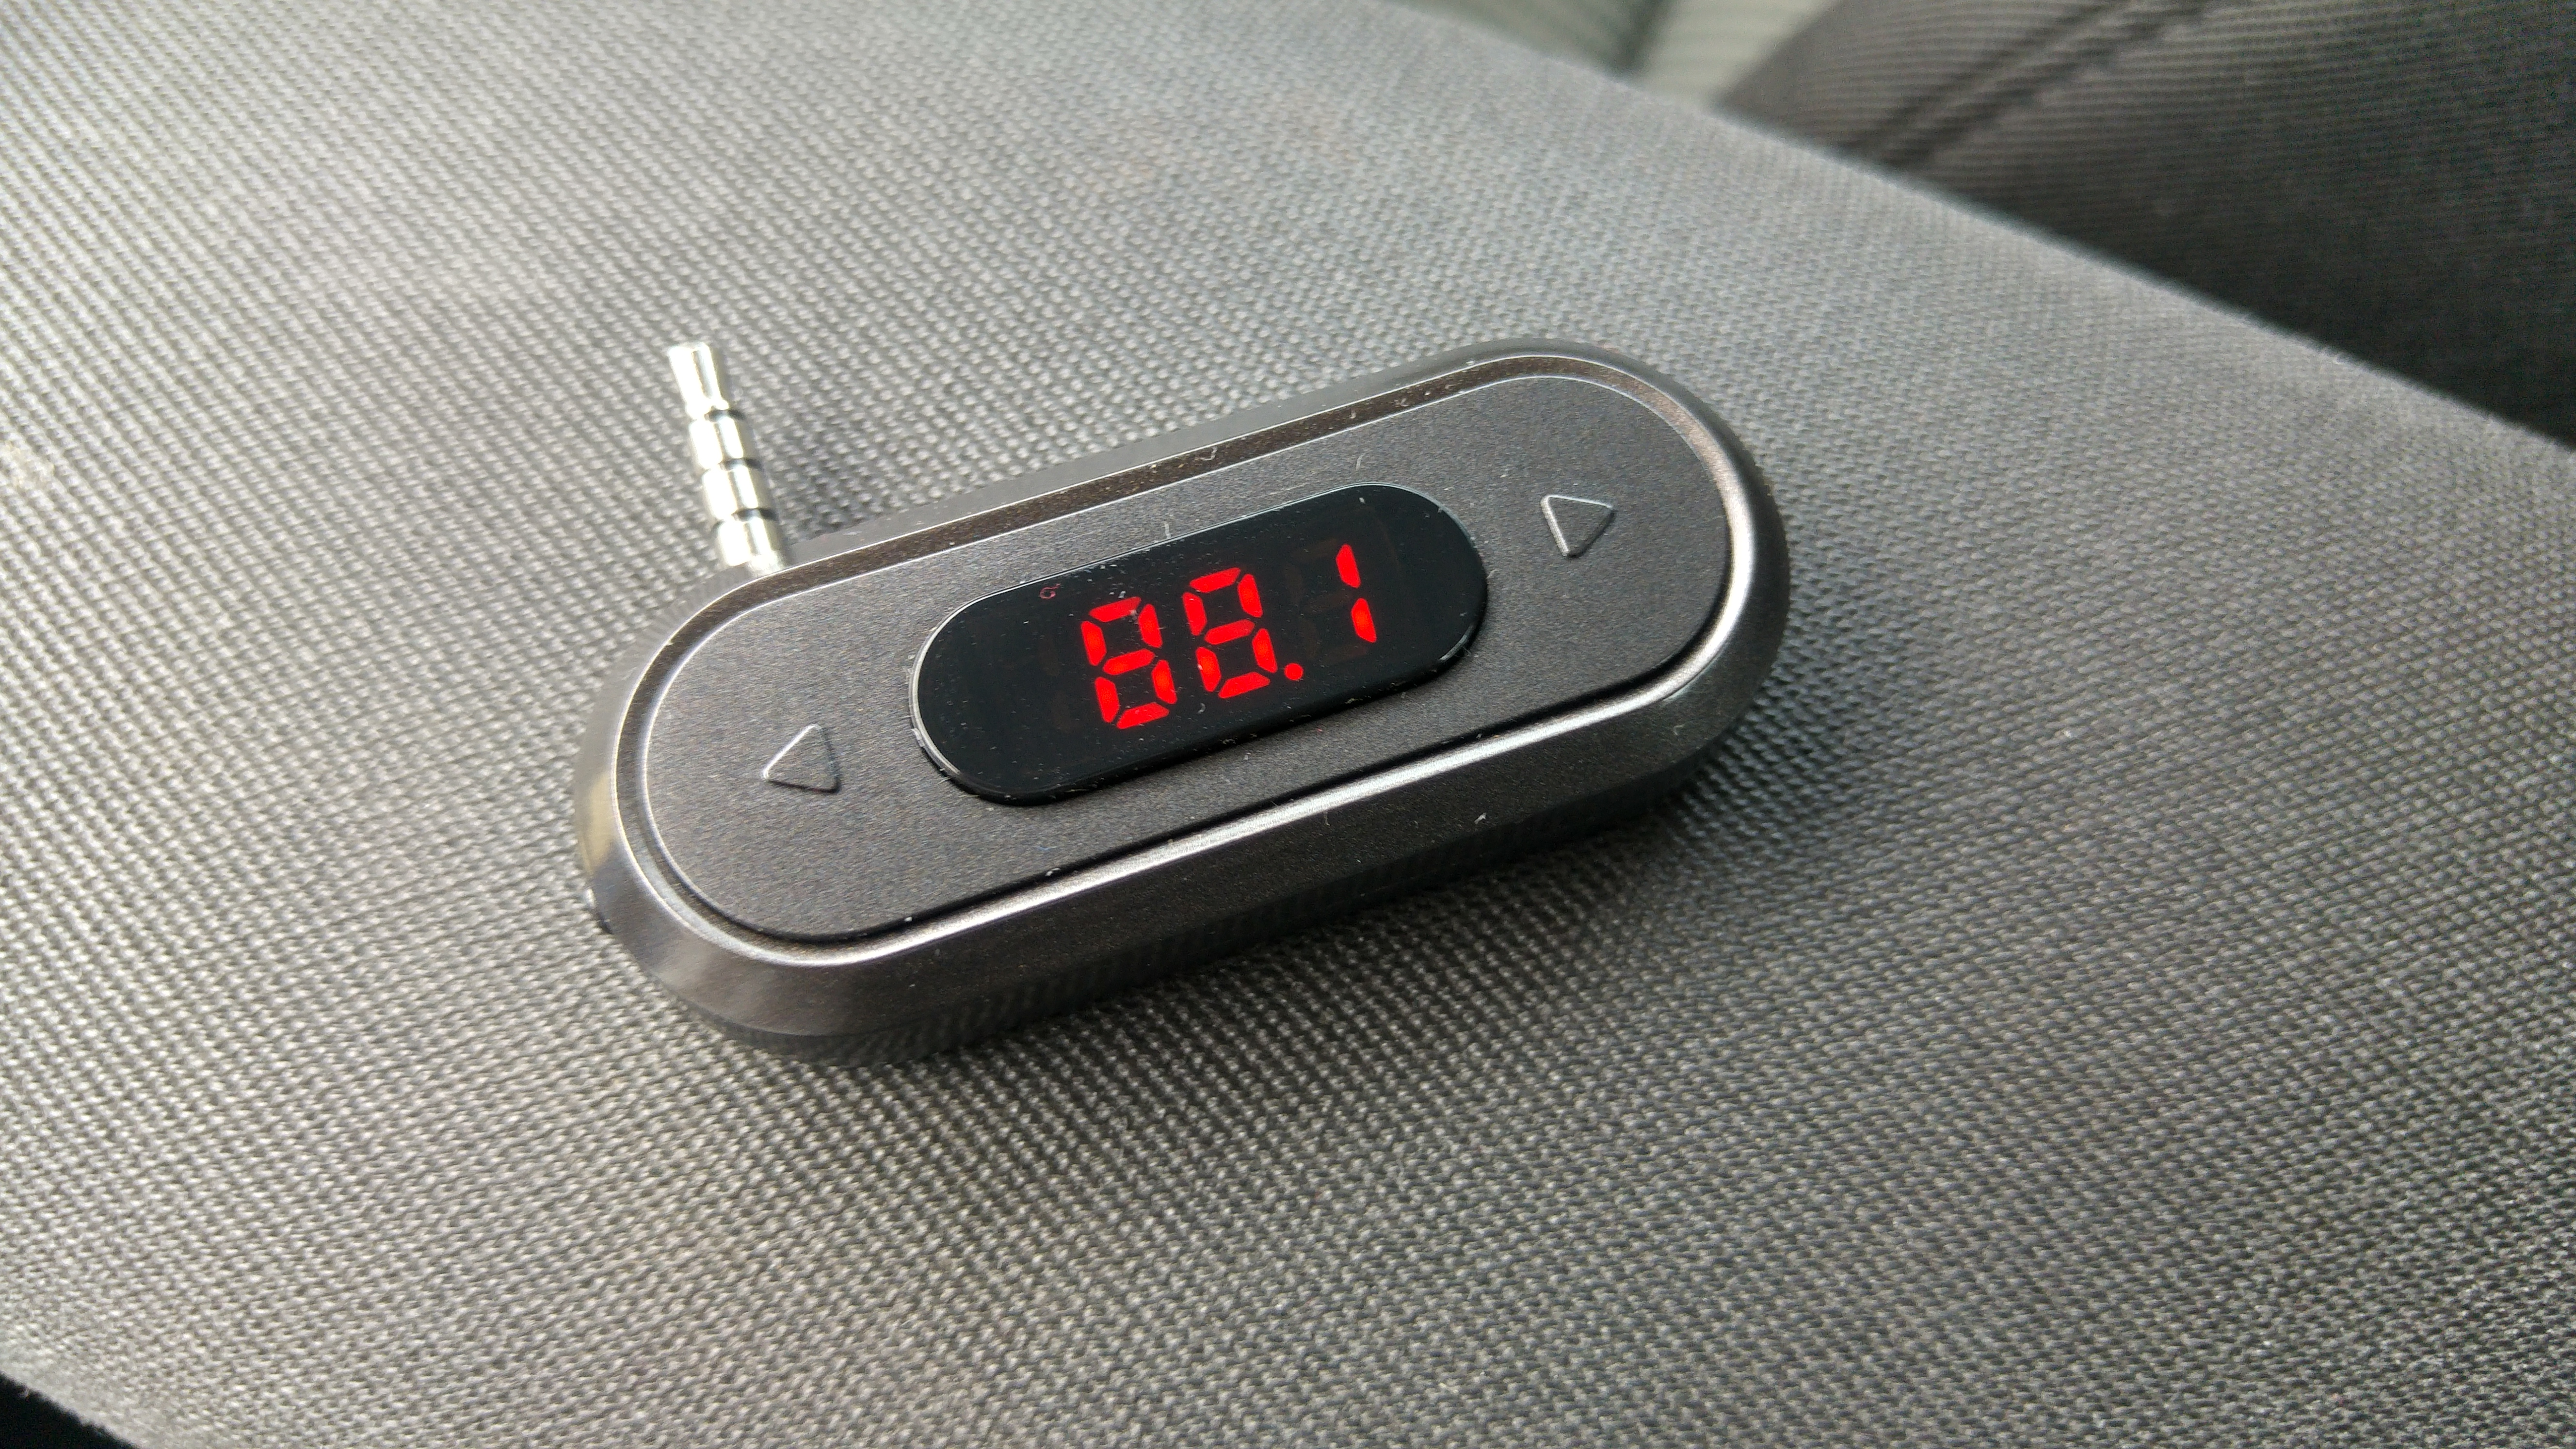 fm transmitter review: